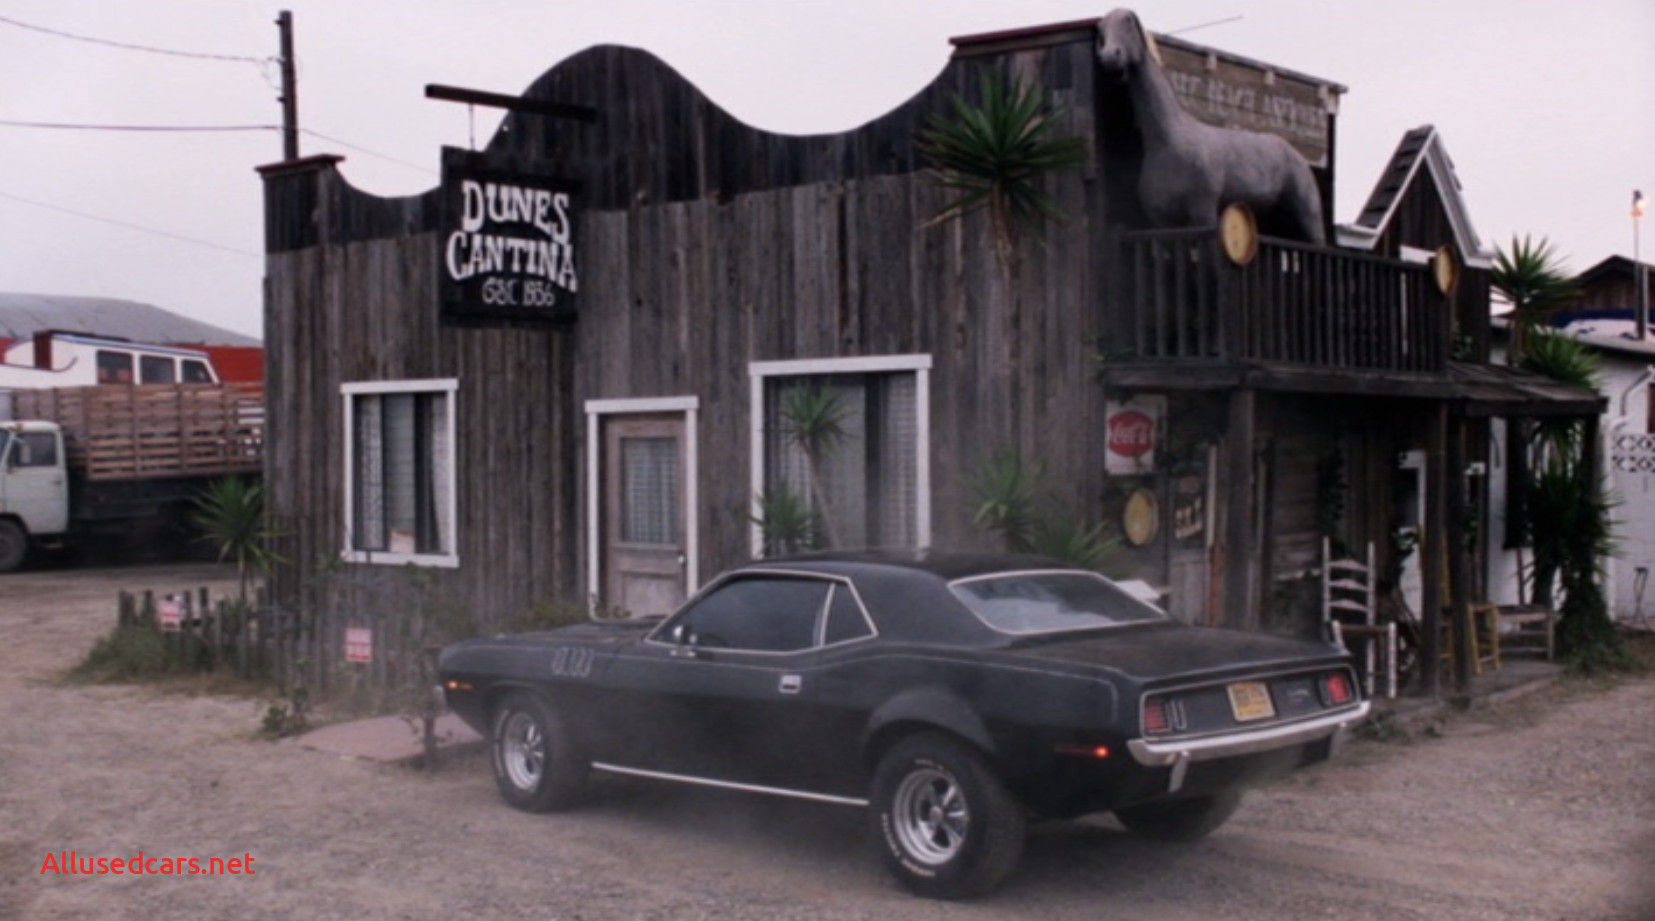 5 Things You Need to Know About the Phantasm Car